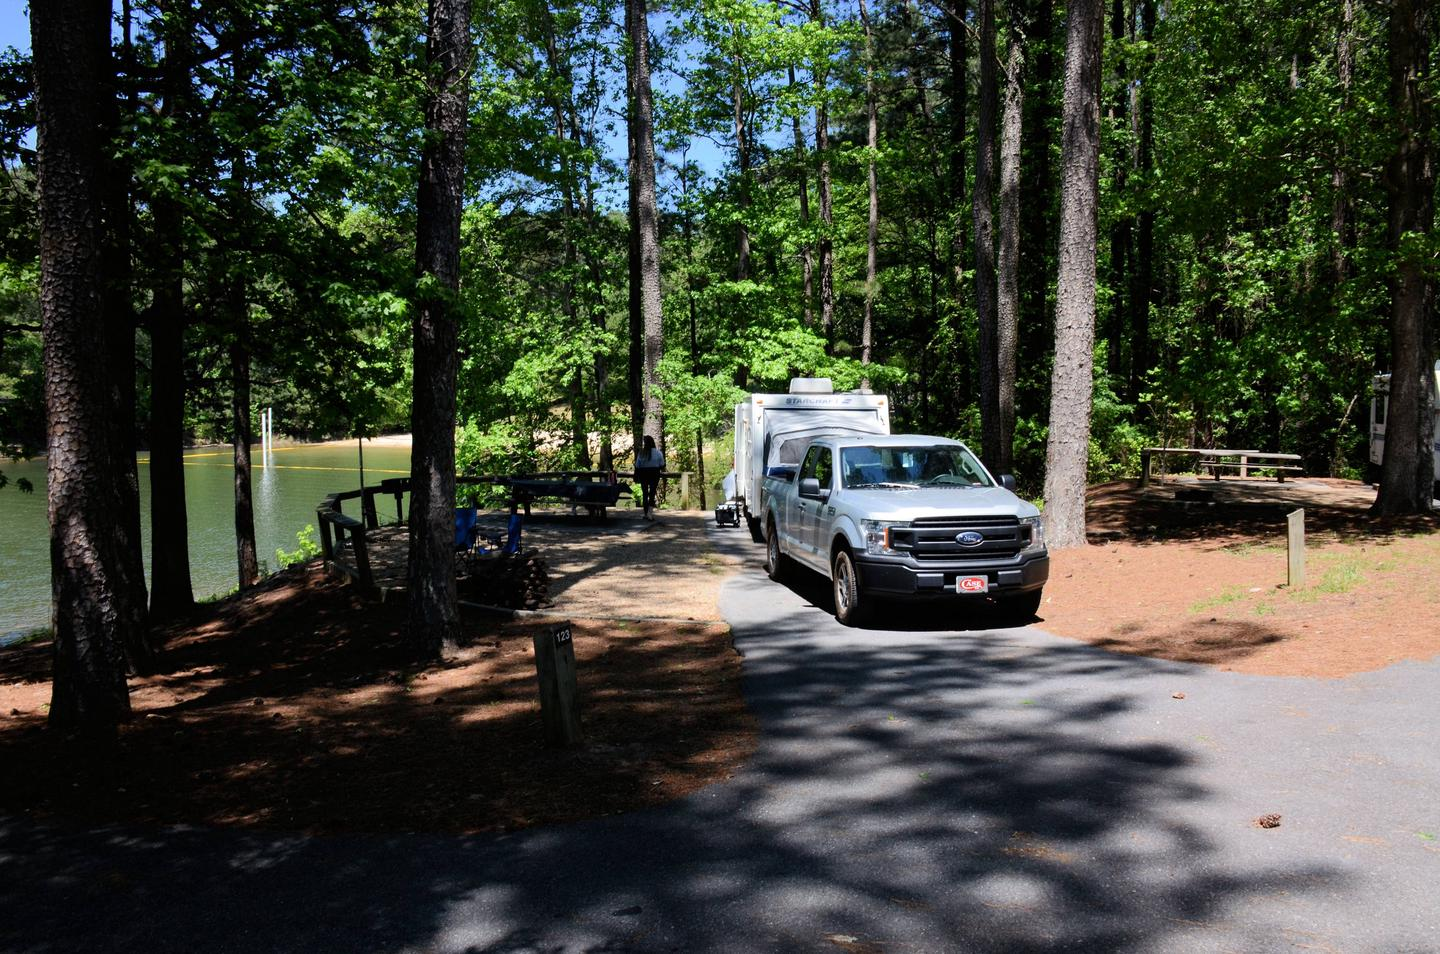 Driveway entrance, campsite view, awning-side clearance.McKinney Campground, campsite 122.